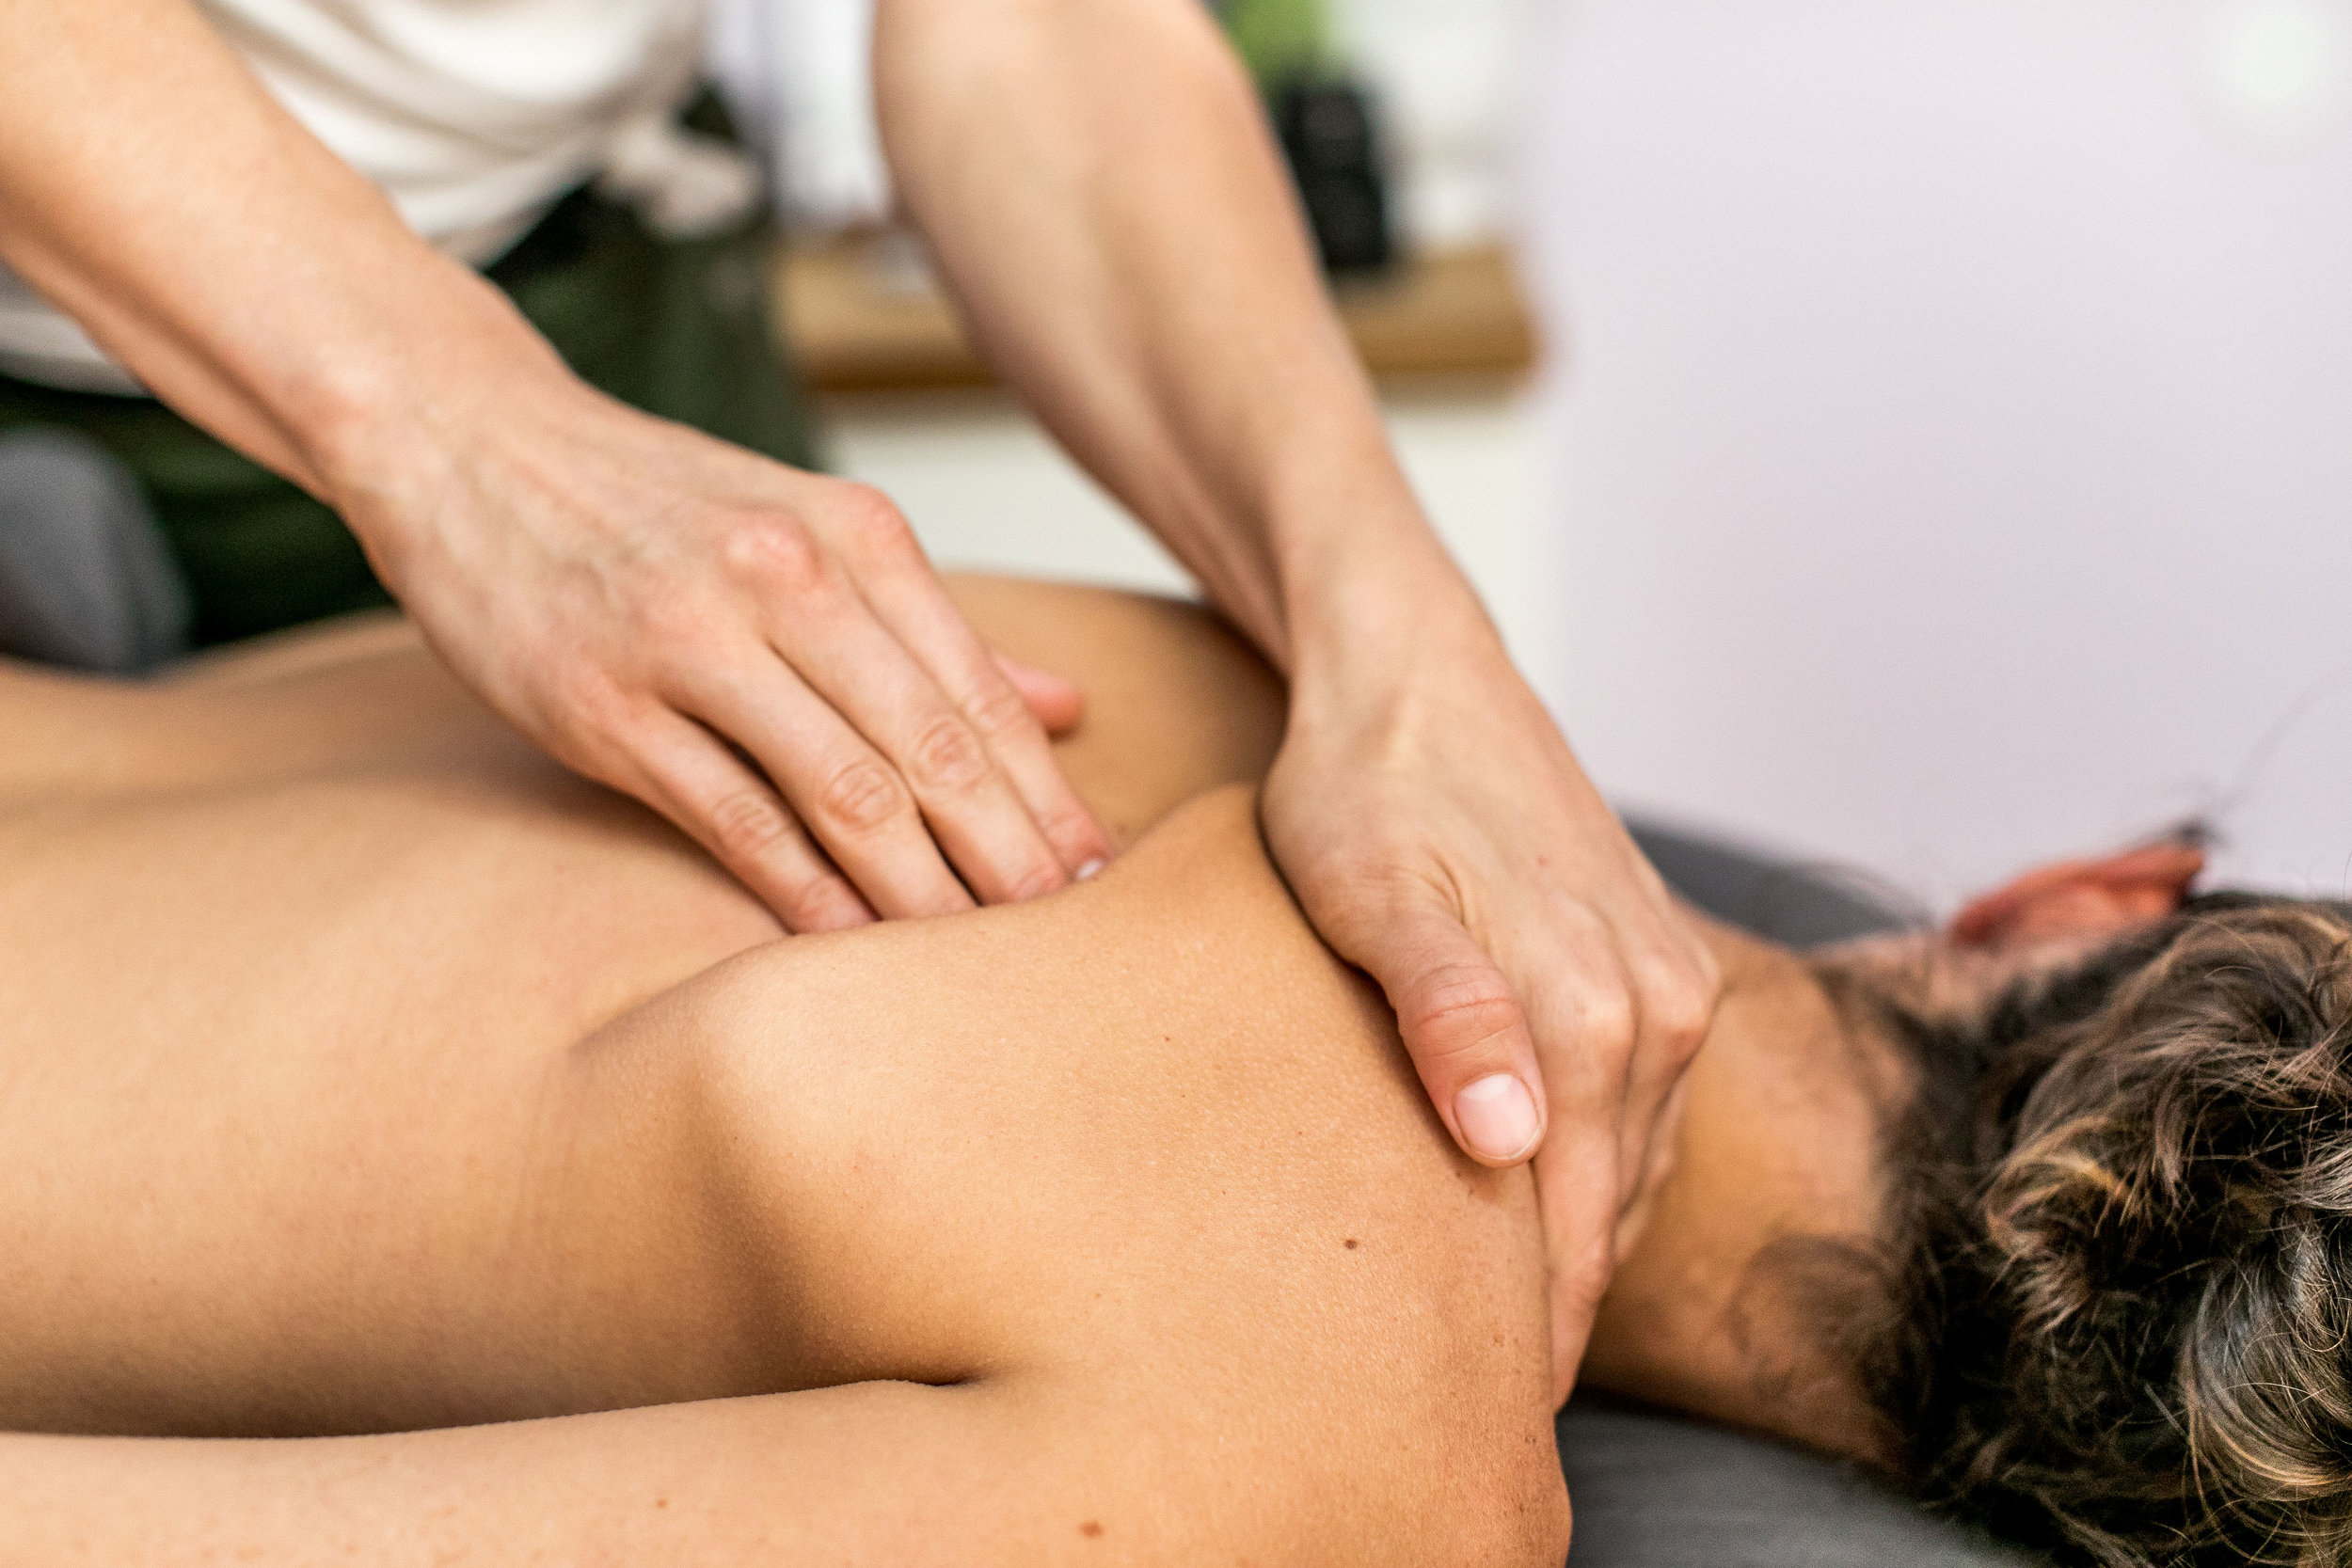 Relaxing Massage - Enjoy a range of therapeutic massage services that include free aromatherapy